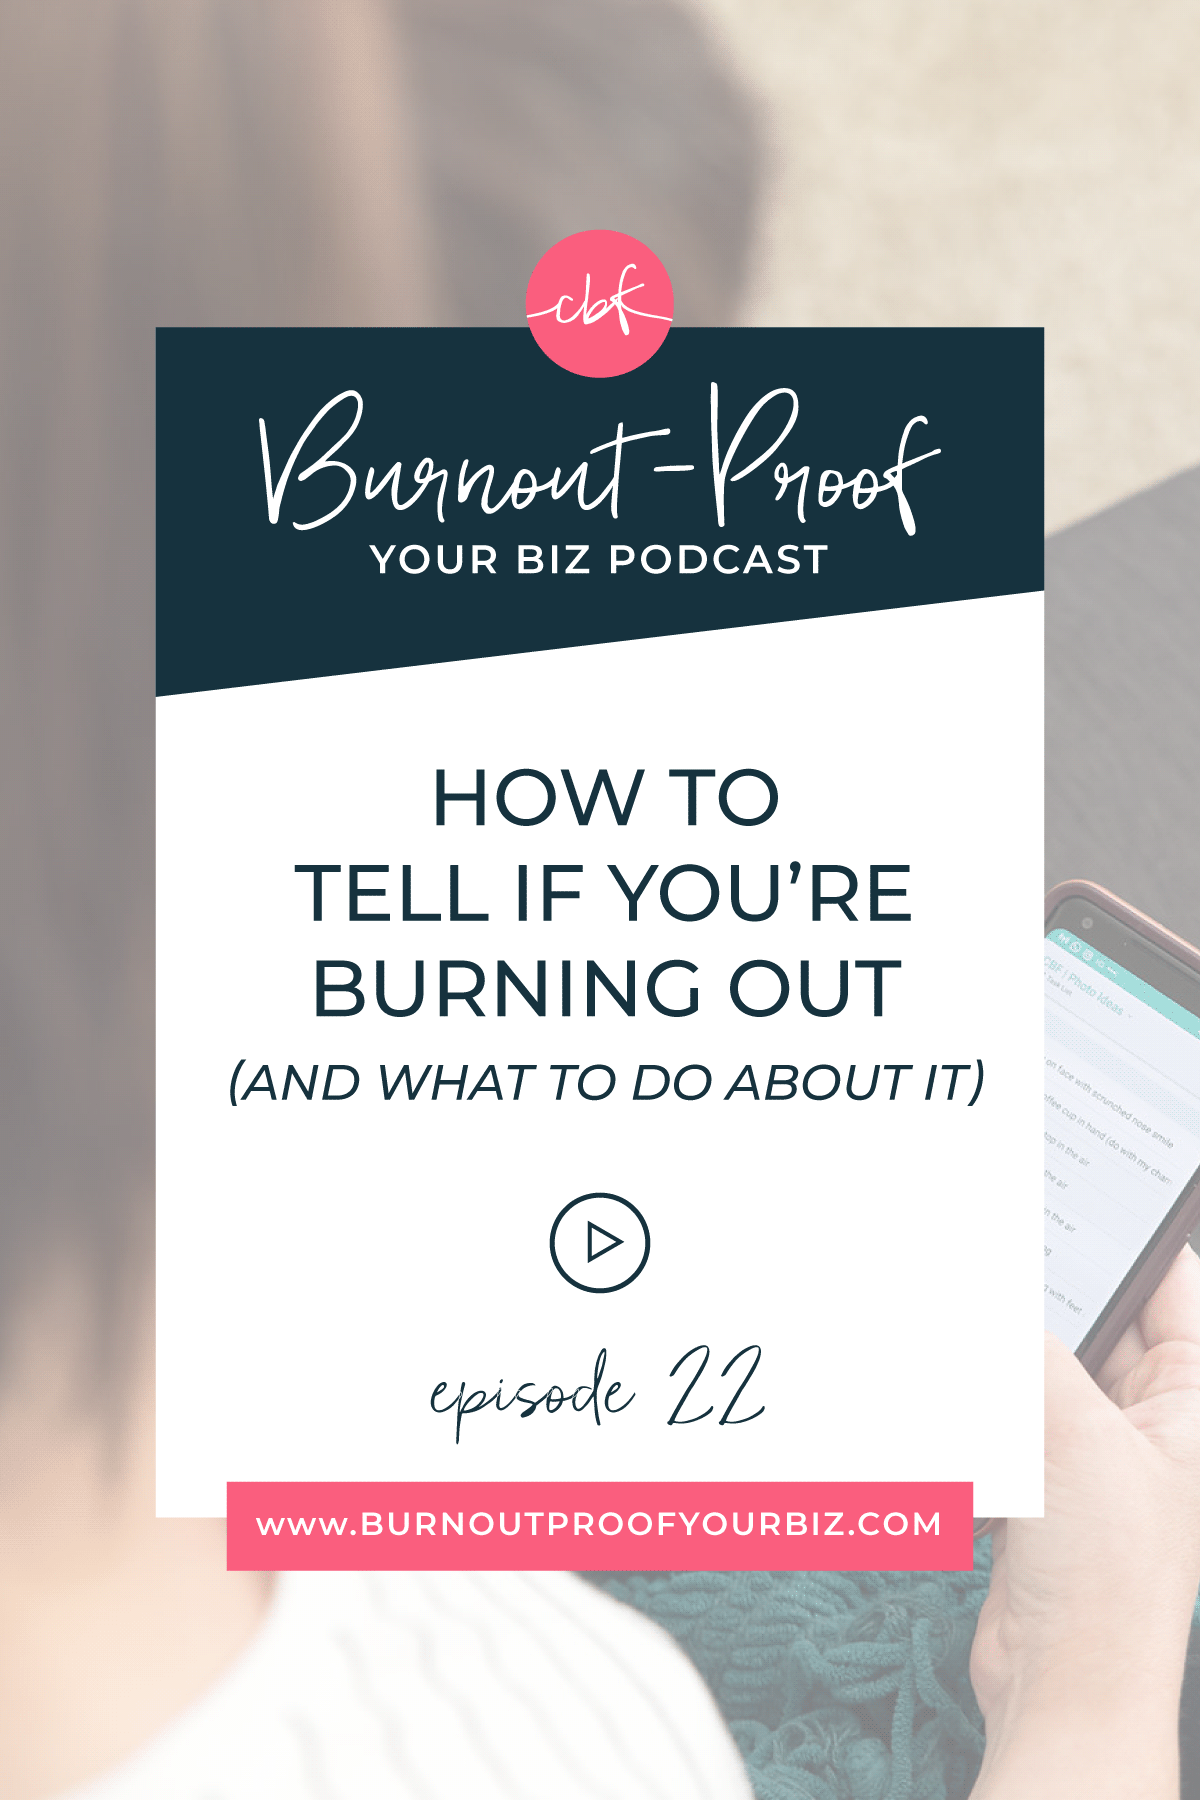 Burnout-Proof Your Biz Podcast with Chelsea B Foster | Episode 022 - How to Tell If You're Burning Out (And What to Do About It) | Learn how to run your biz and live your dream life on your own terms without the fear of burnout.